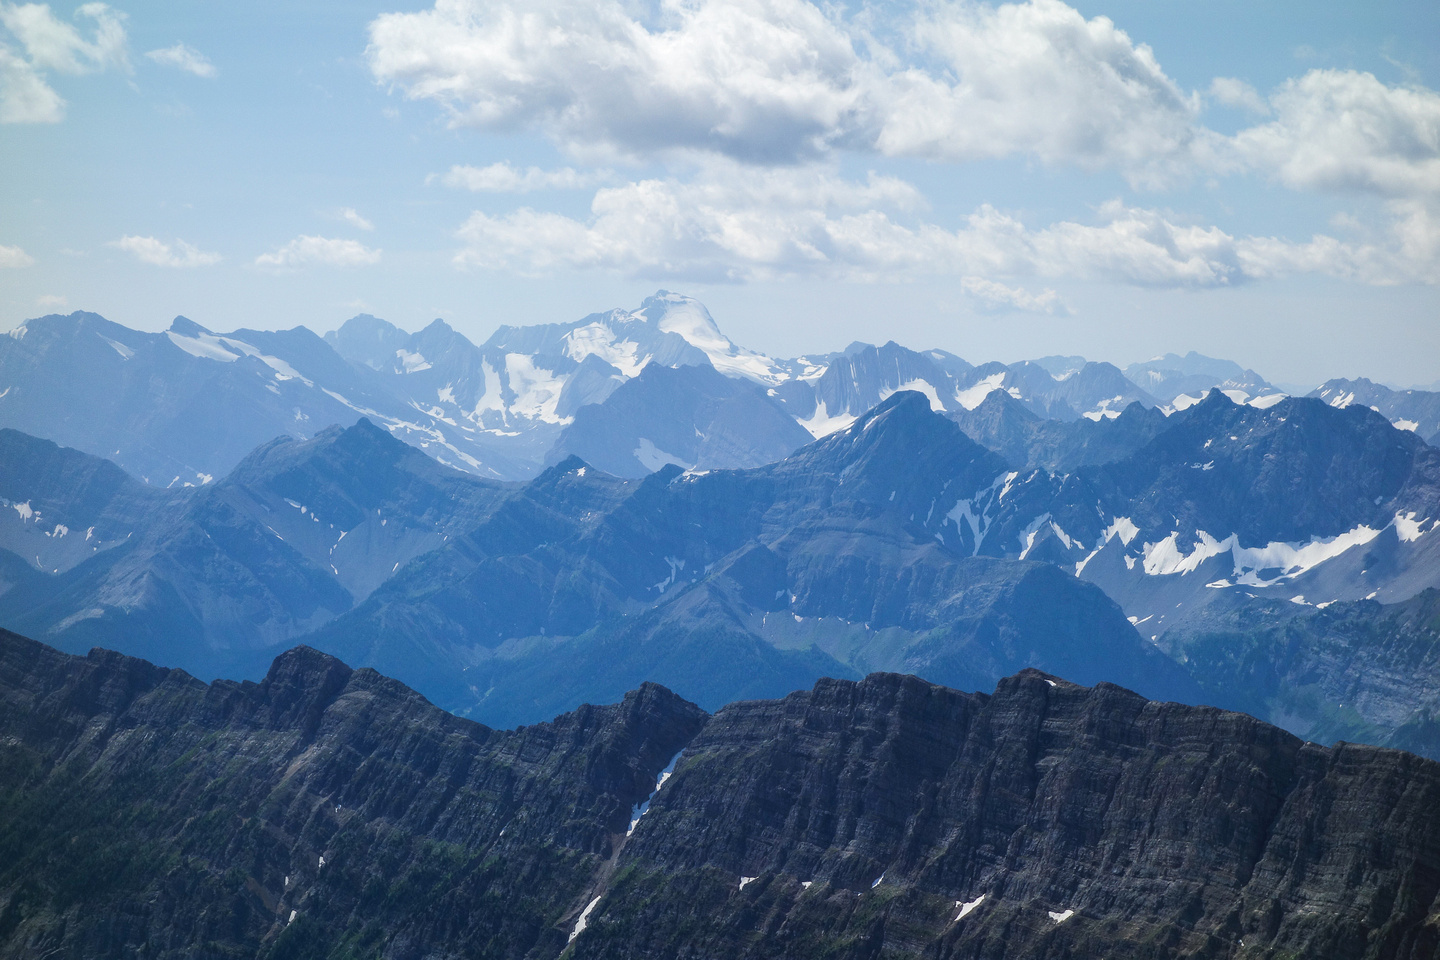 Mount Joffre looms over peaks such as Lyautey, Black Prince, Marlborough and Warspite.